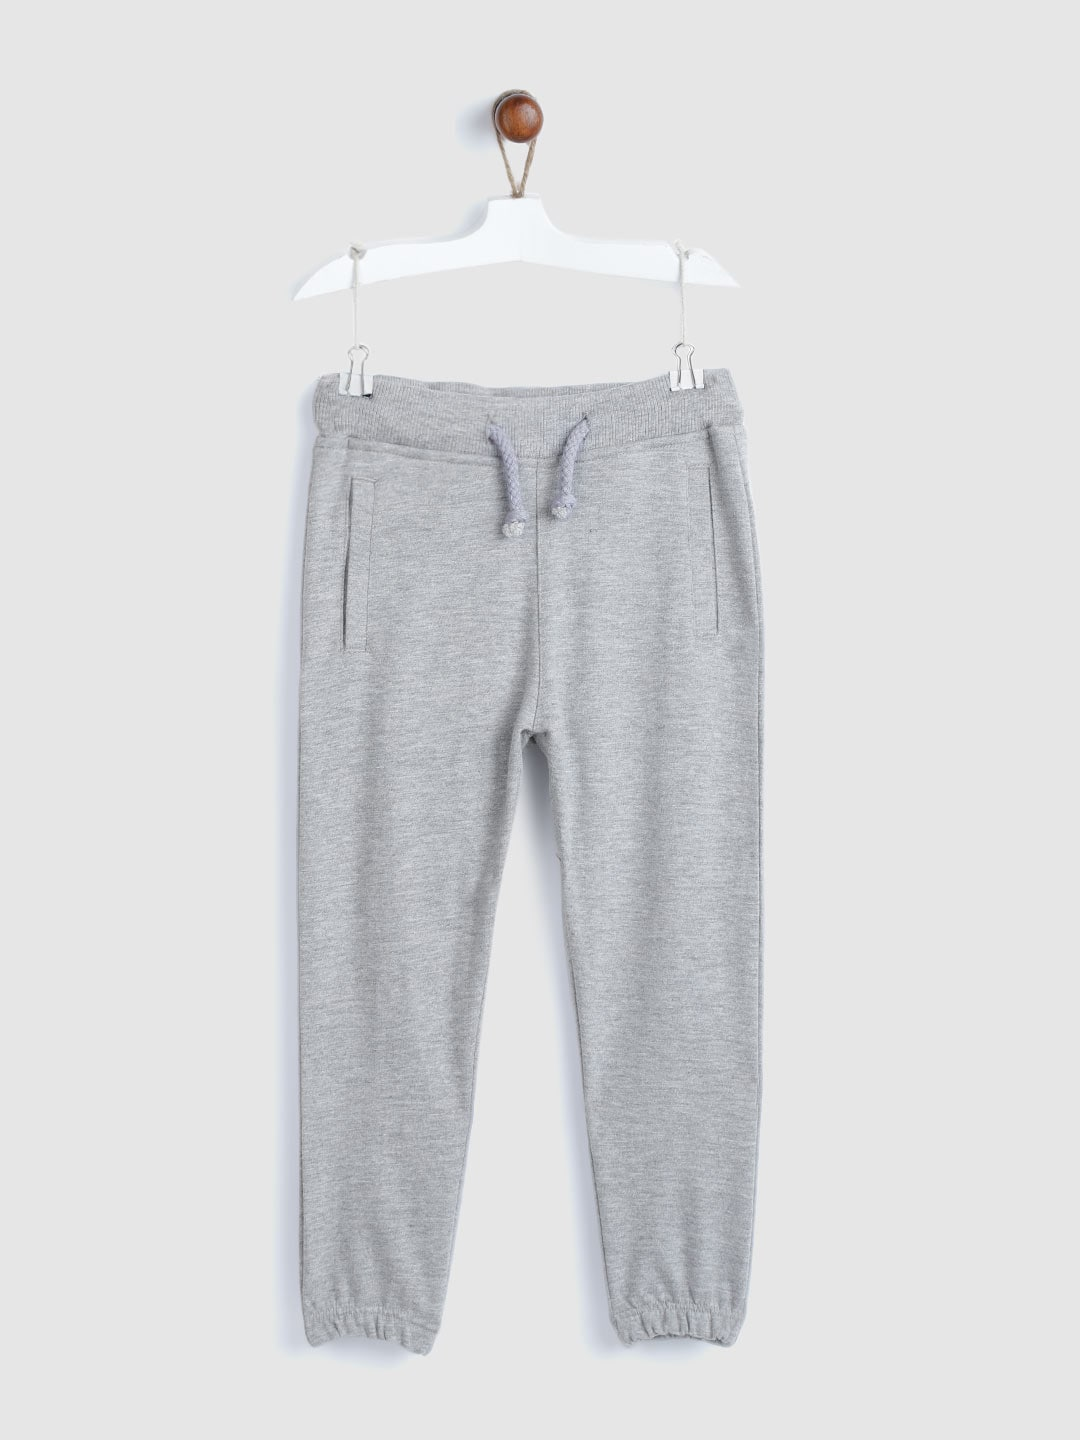 c185c9c07058 Boys Track Pants- Buy Track Pants for Boys online in India